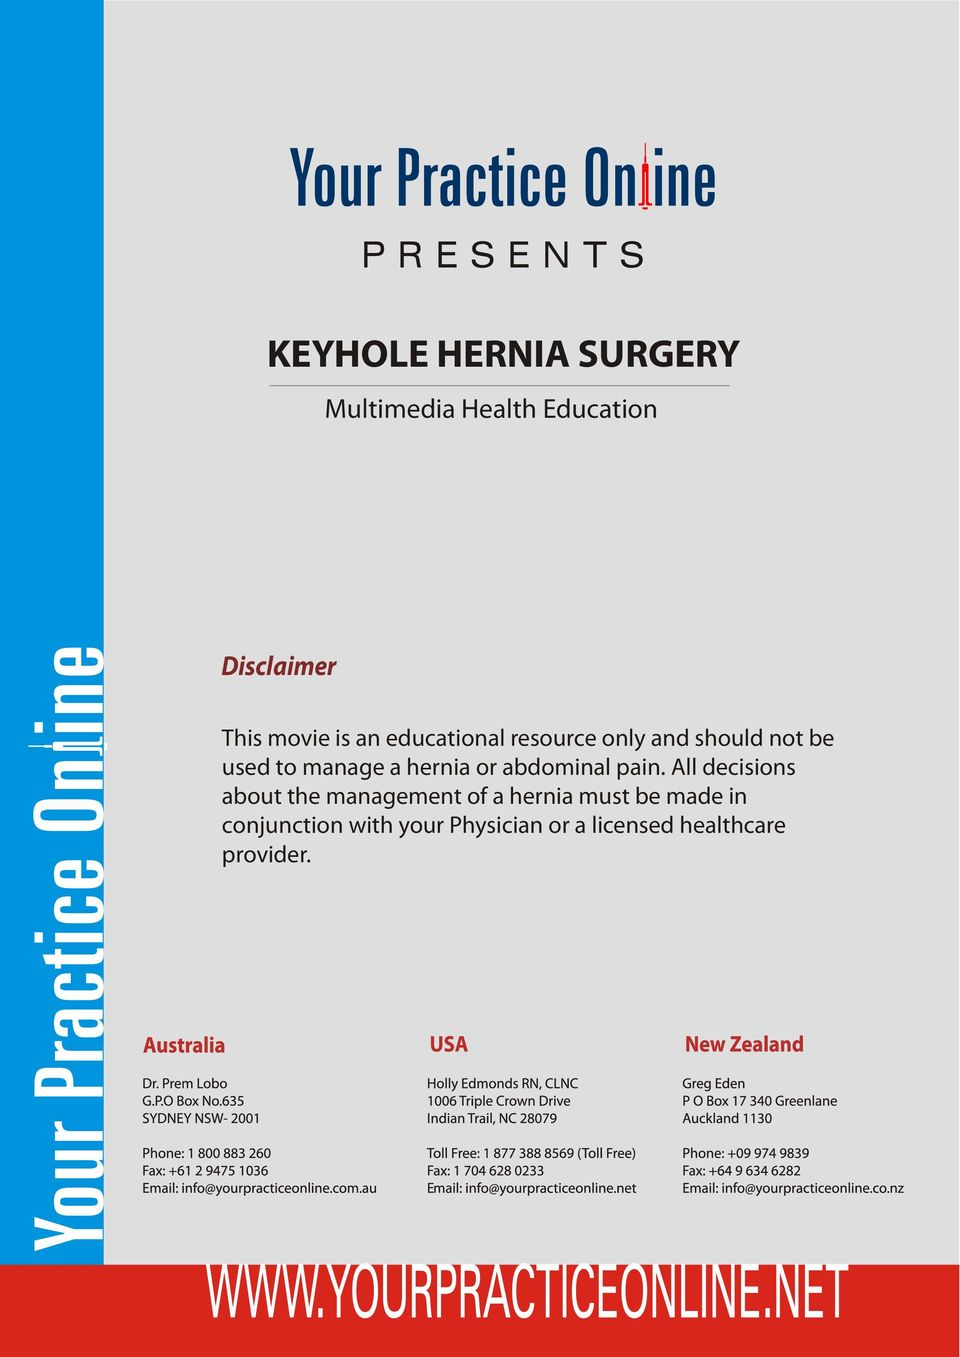 All decisions about the management of a hernia must be made